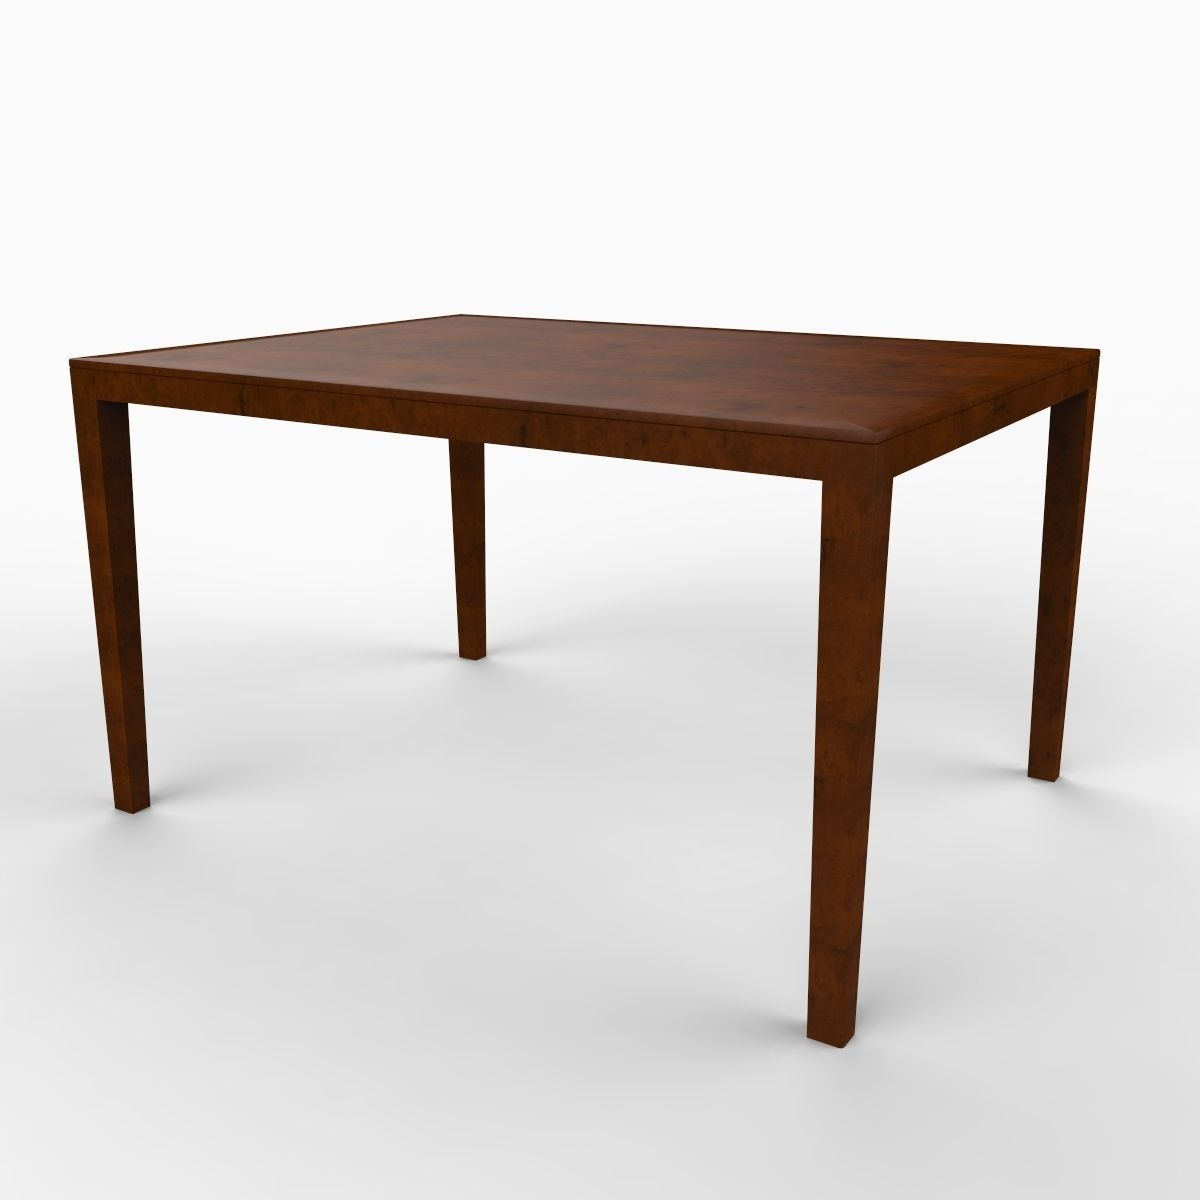 Max A Table Simple Dining Table 3d Model Max Obj 3ds C4d Lwo Lw